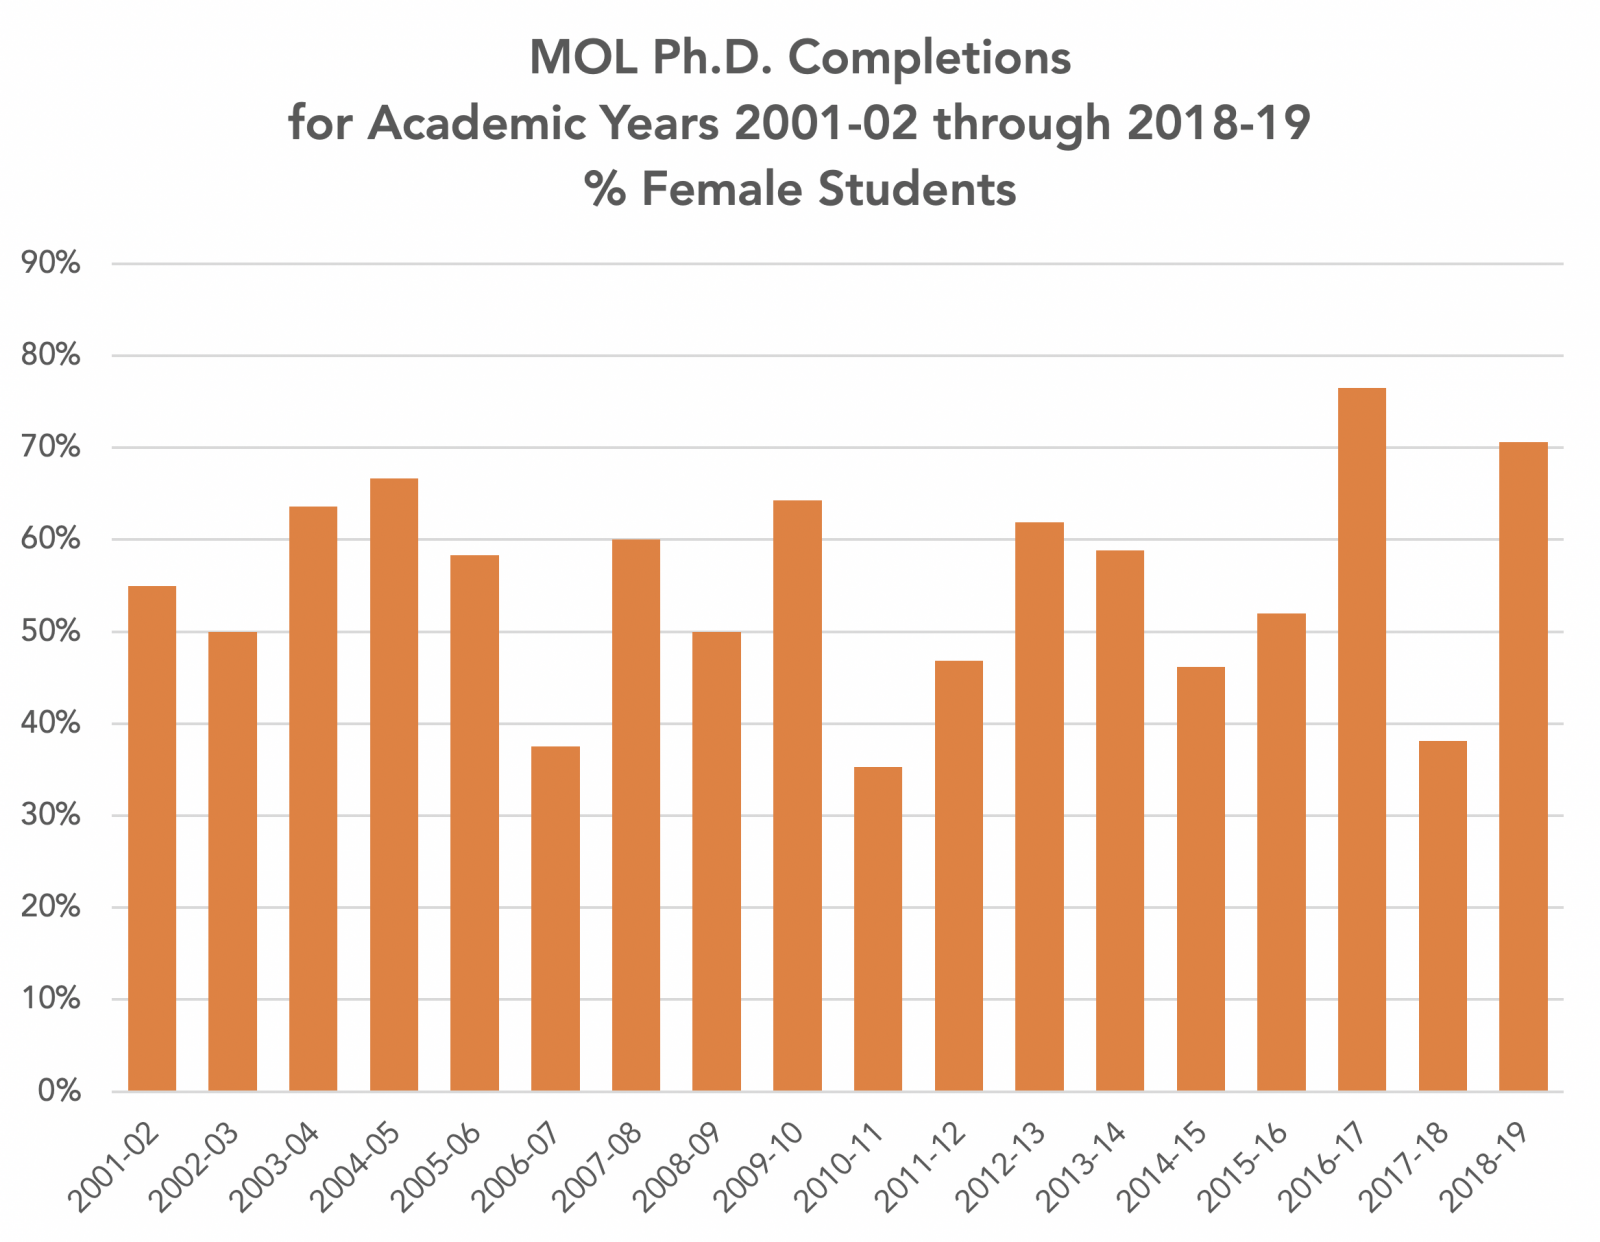 MOL Ph.D. Completions for Academic Years 2001-02 through 2018-19, % Female Students